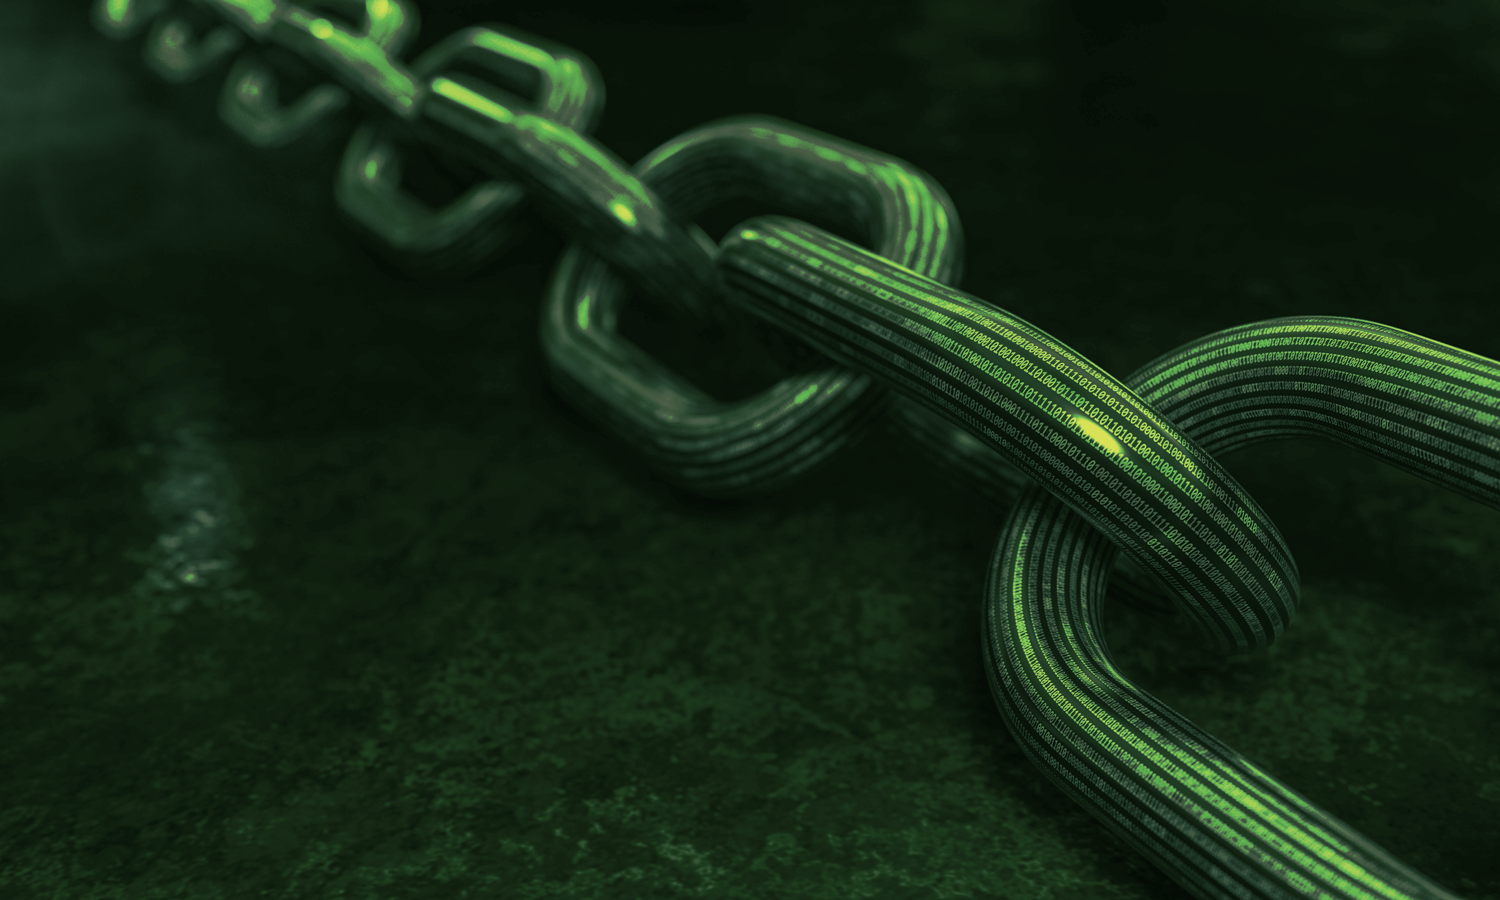 A green background of a digital chain.